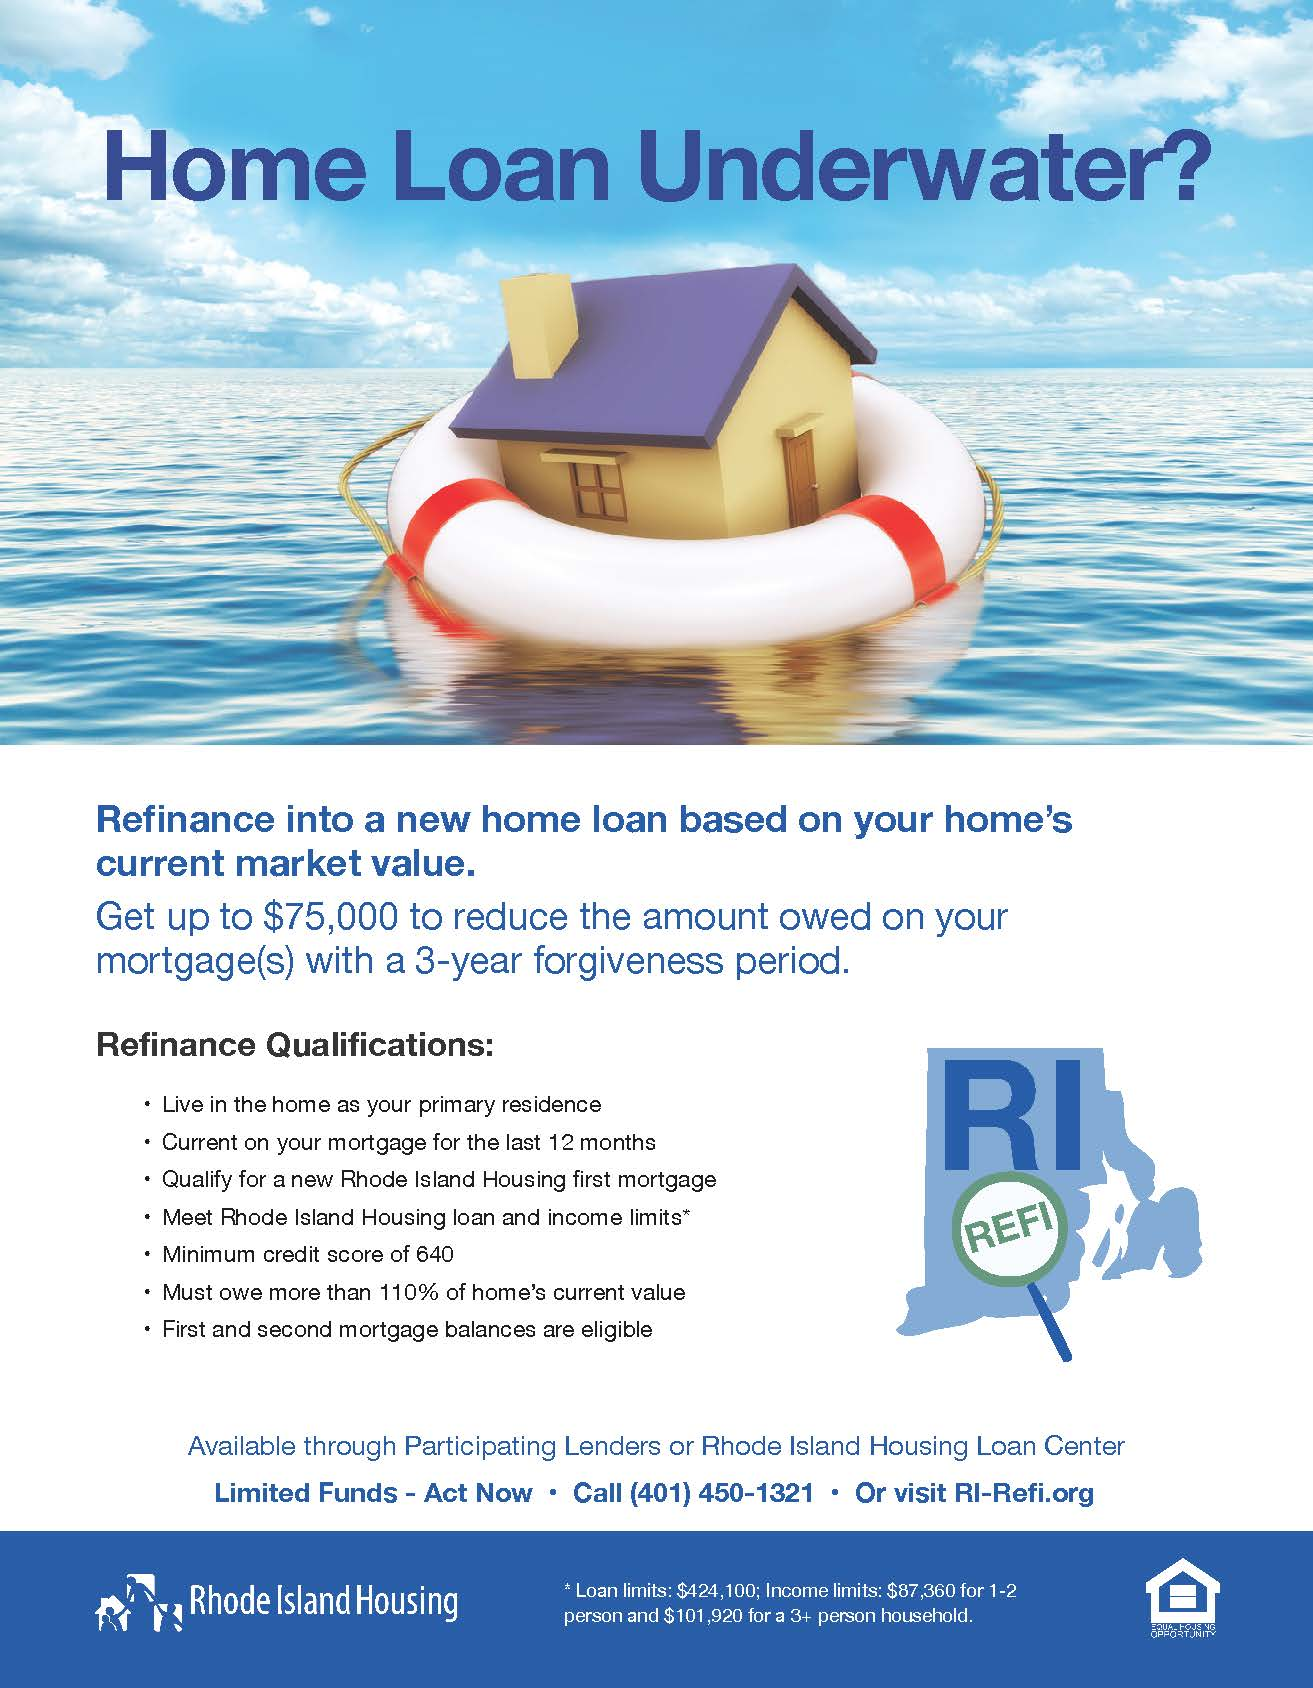 Refinance into a new home loan